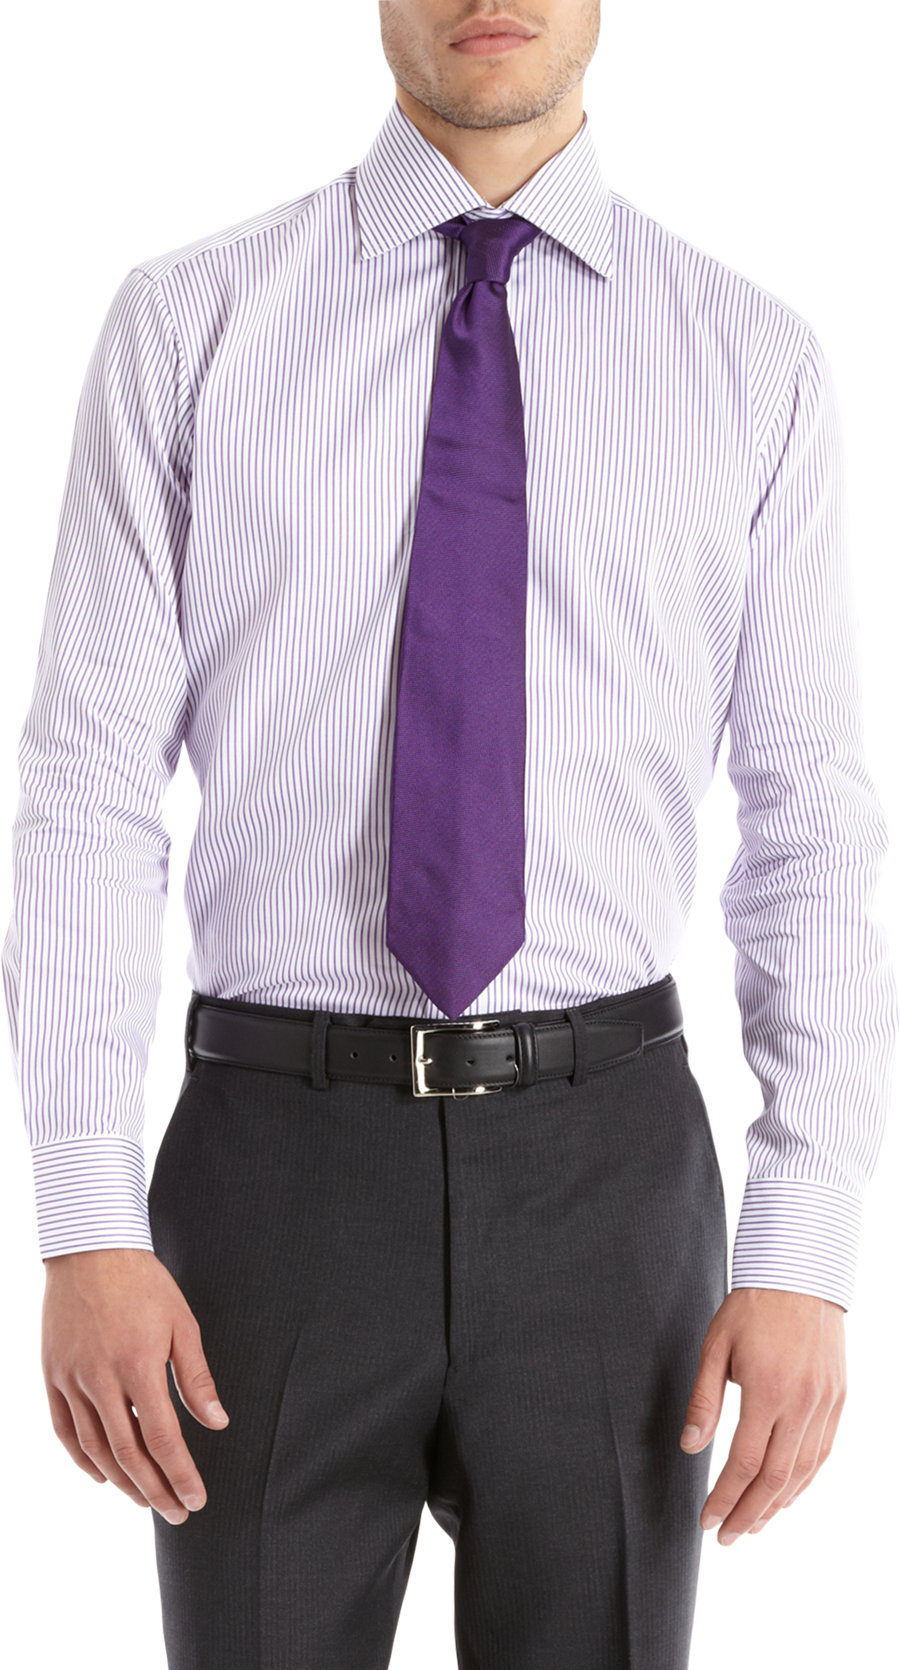 Lyst piattelli men 39 s trim fit striped dress shirt in for Purple striped dress shirt